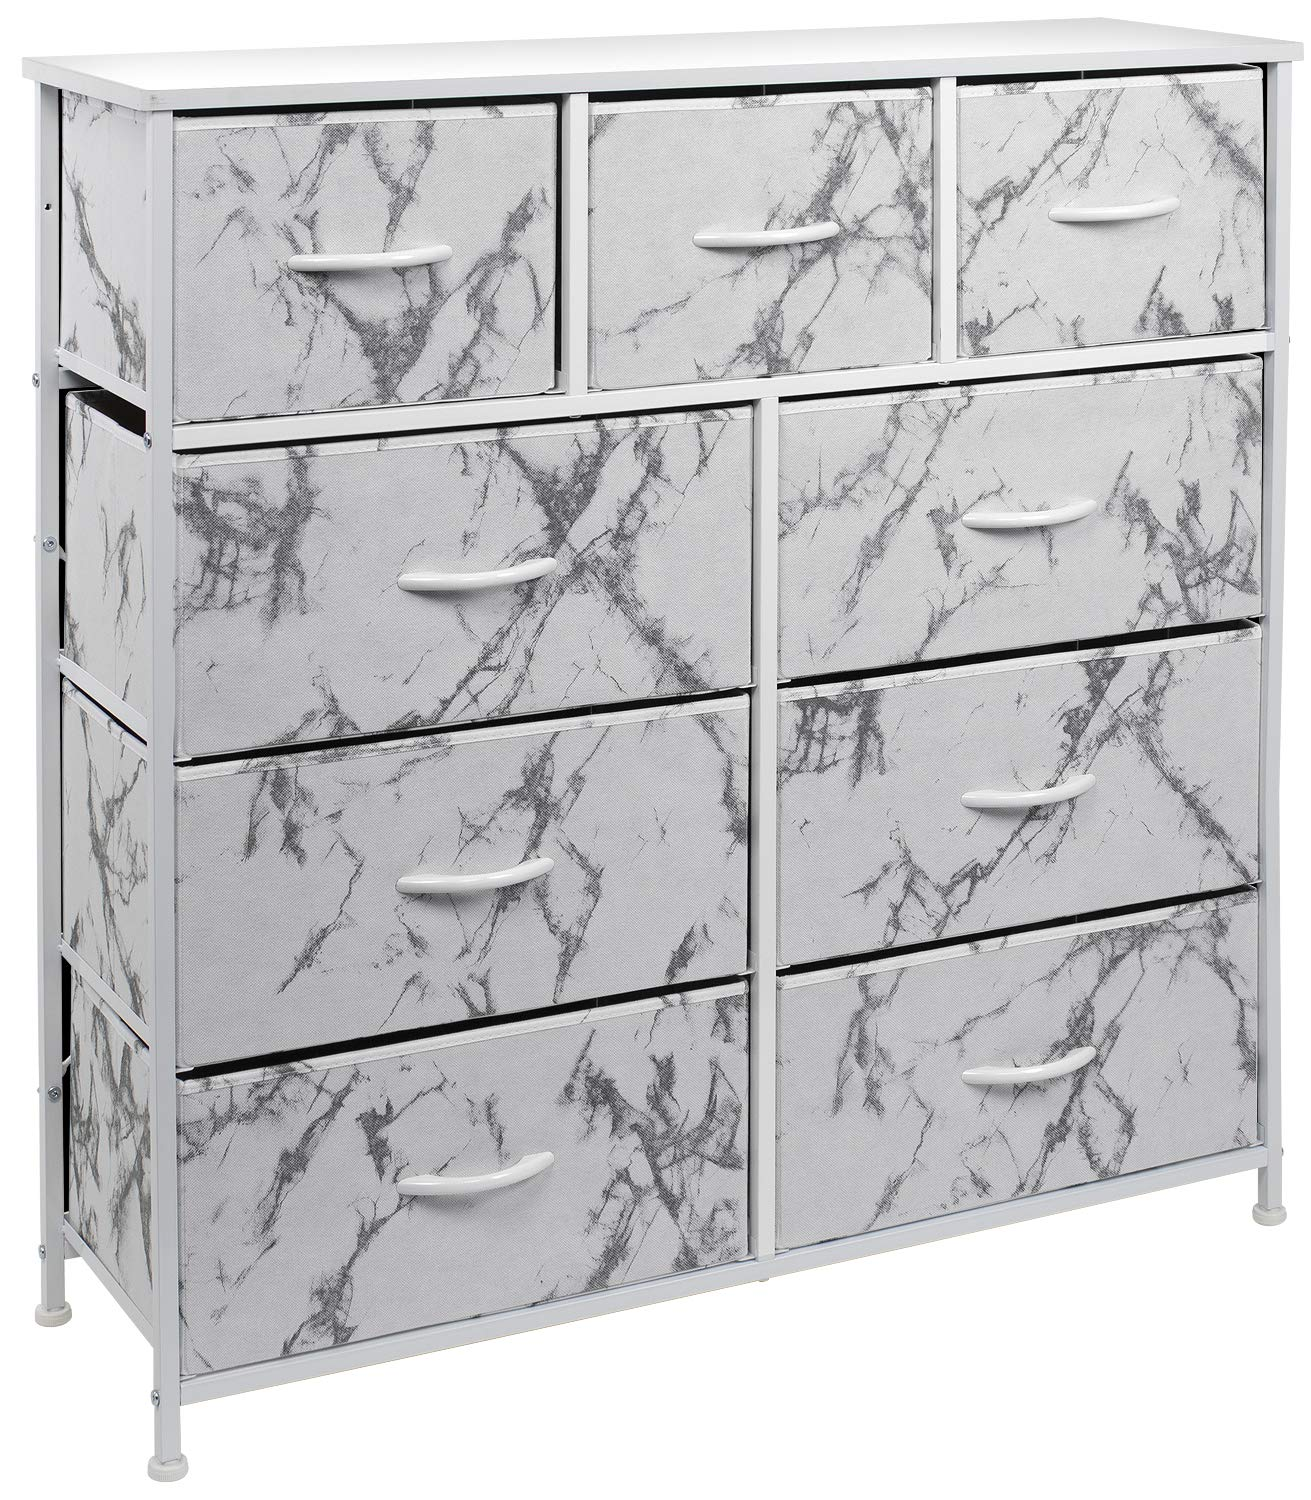 Sorbus Dresser with 9 Drawers - Furniture Storage Chest Tower Unit for Bedroom, Hallway, Closet, Office Organization - Steel Frame, Wood Top, Fabric Bins (Marble White – White Frame)